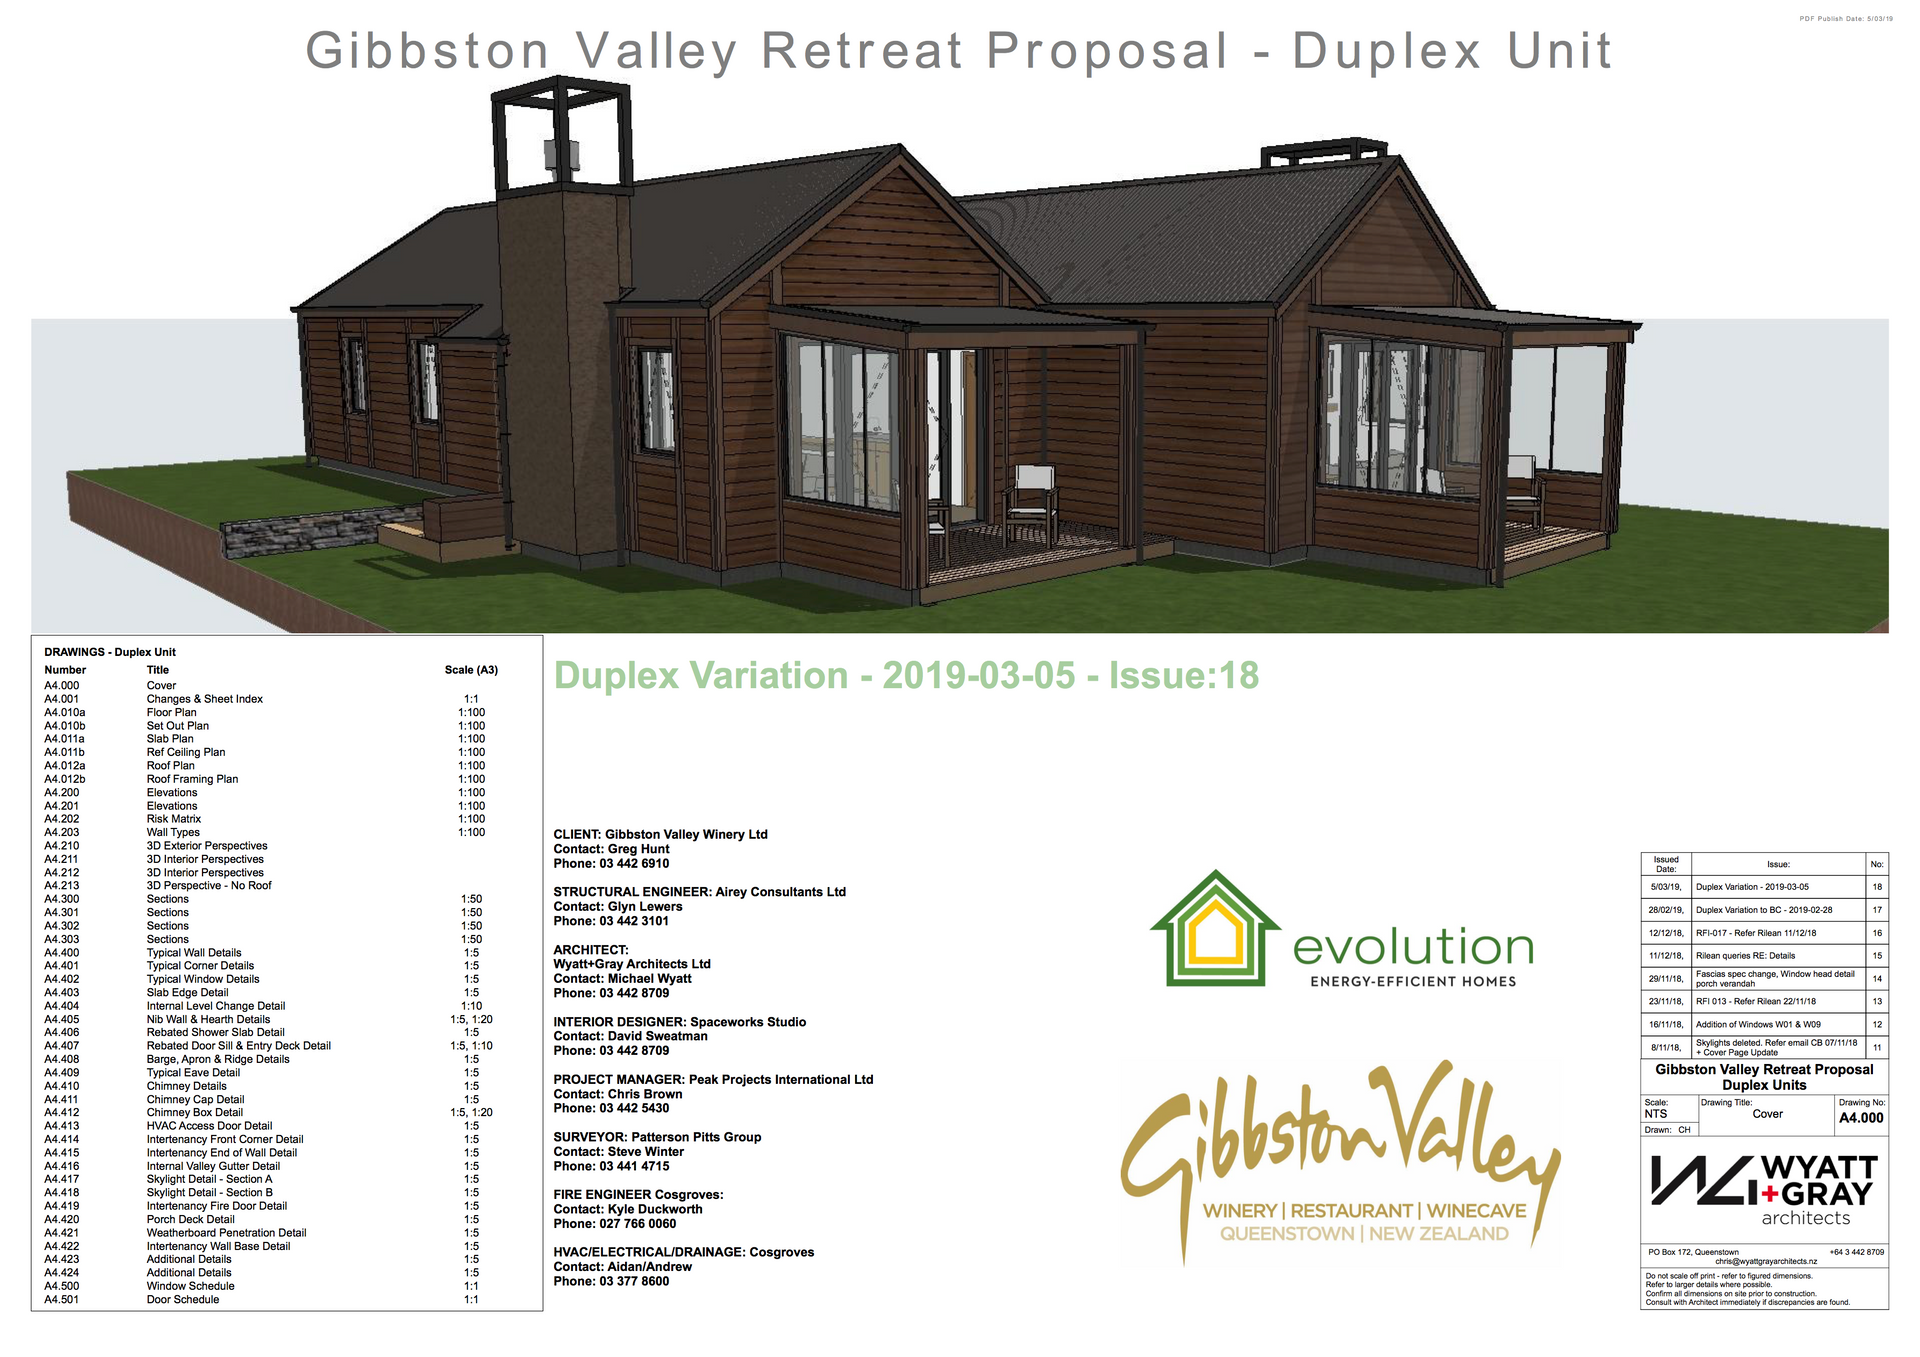 Gibbston Valley Winery - Duplex Cover